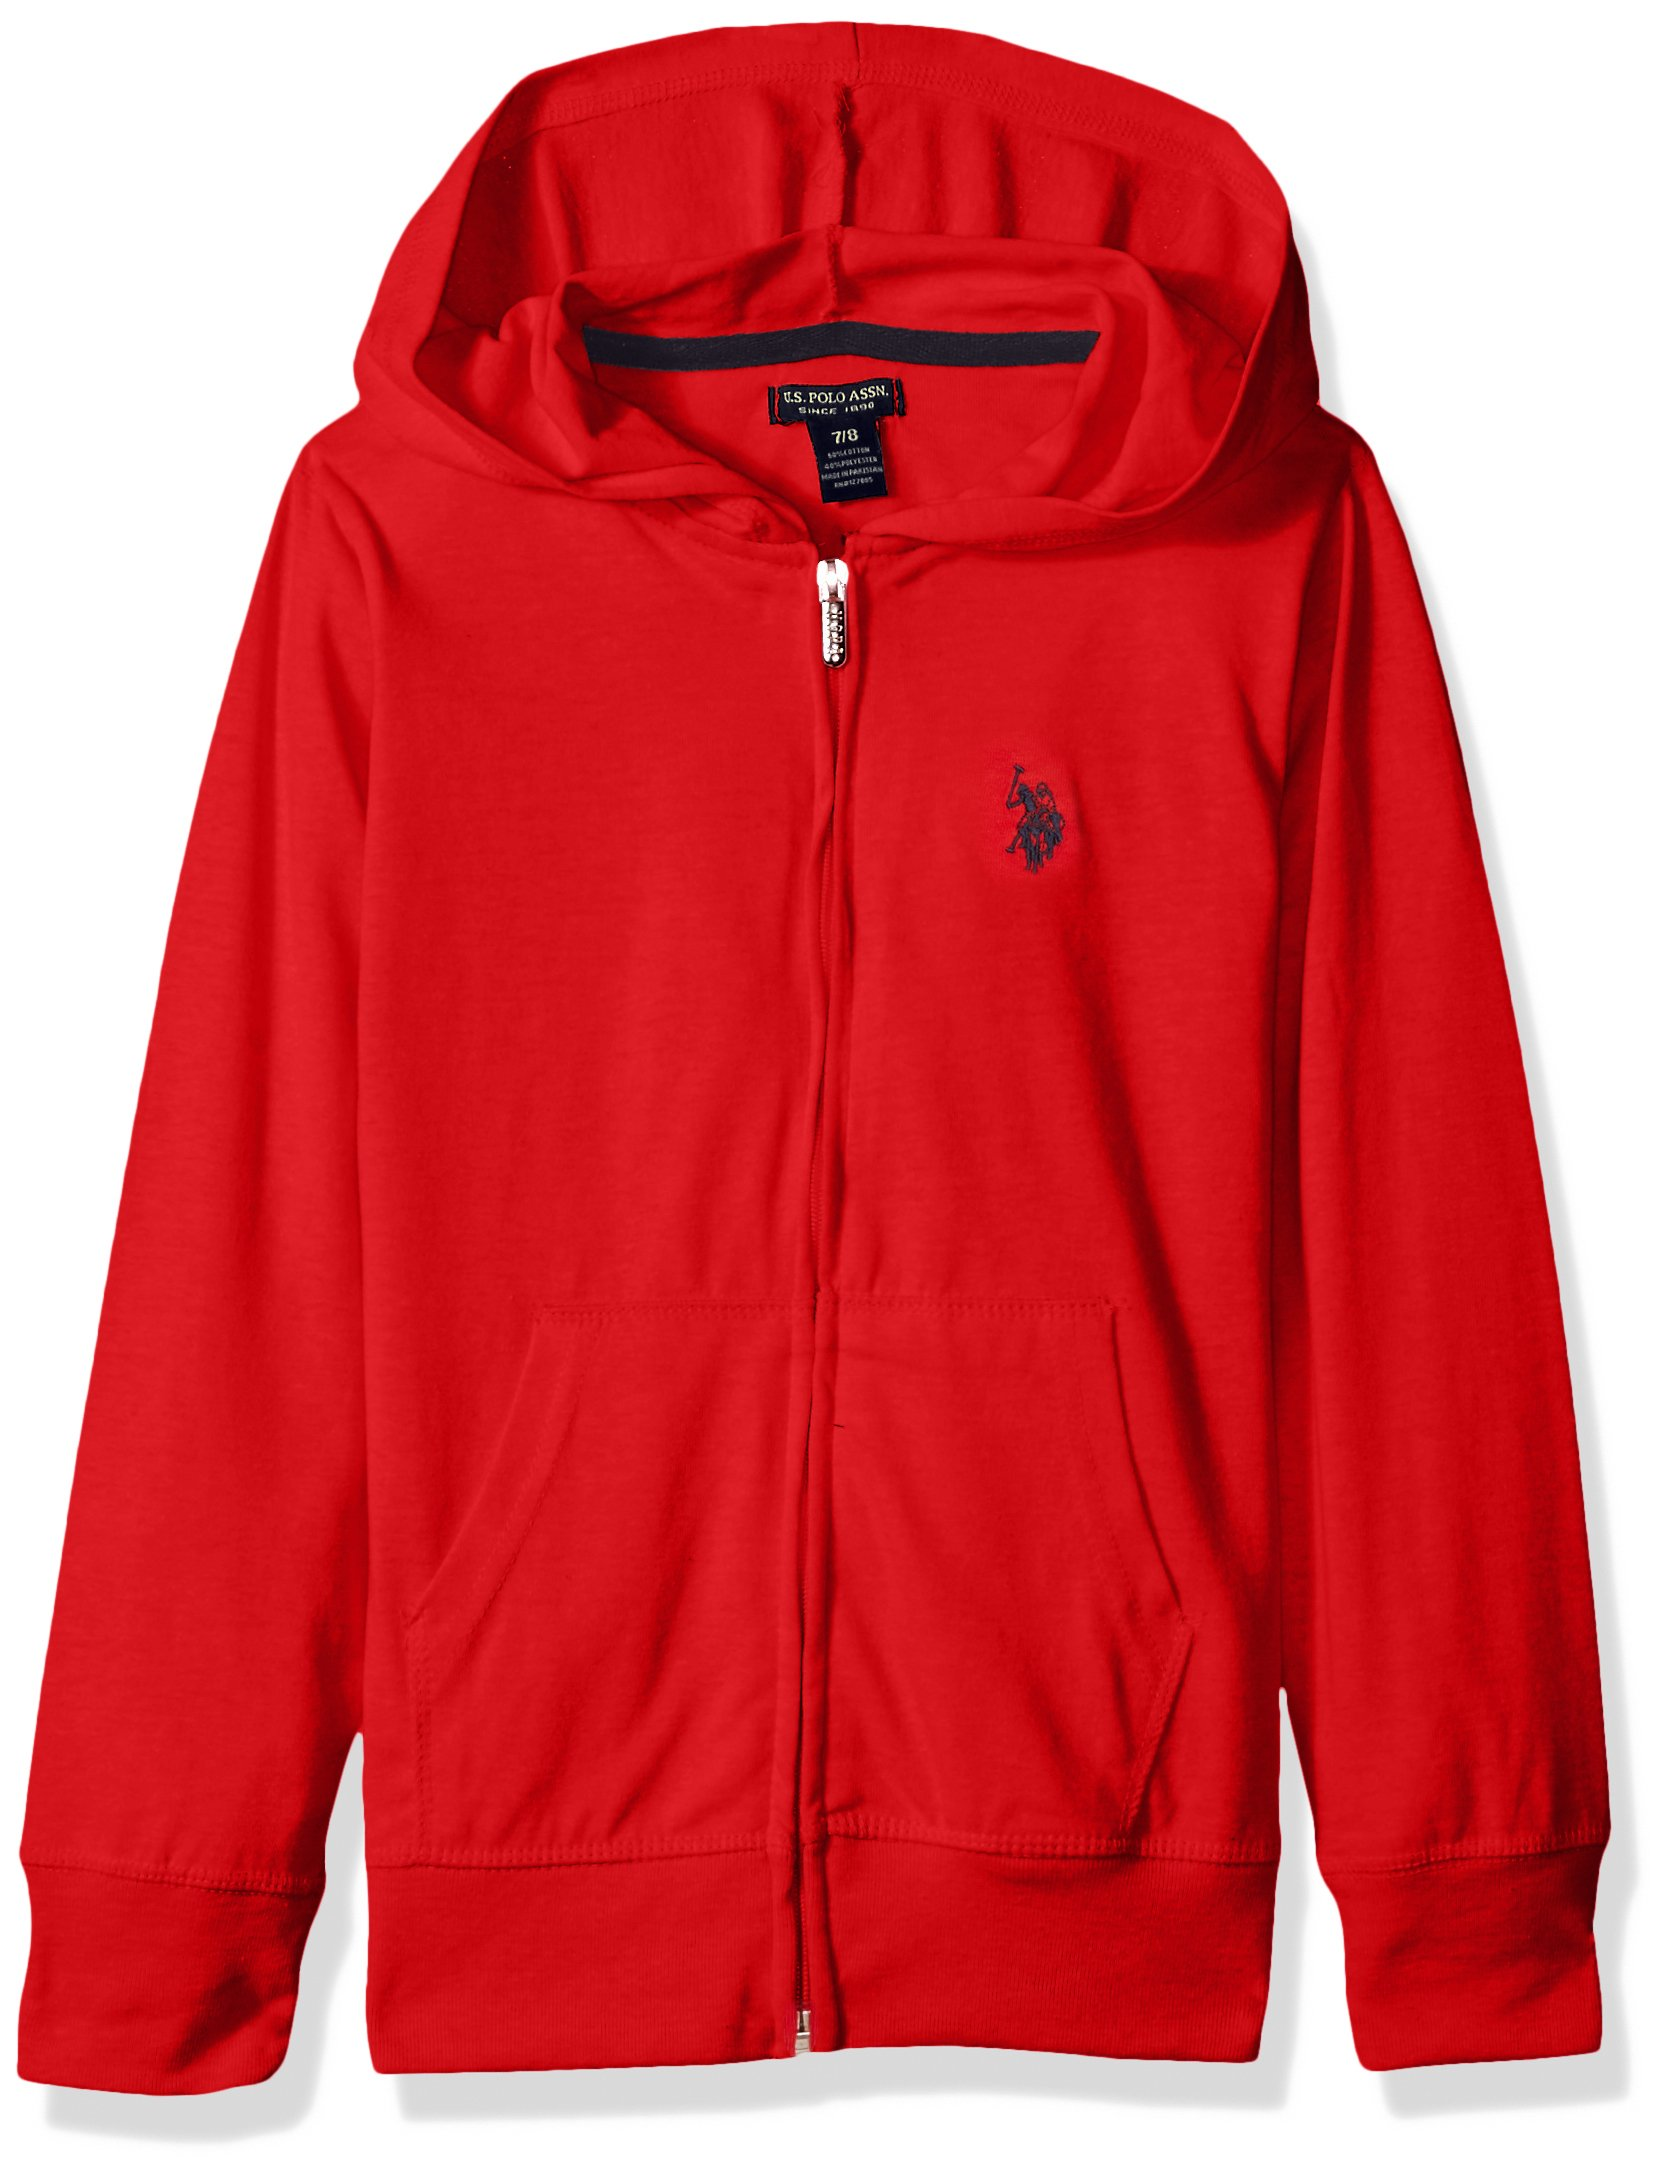 U.S. Polo Assn. Toddler Girls' Long Sleeve Zip up Jersey Hoodie, Red, 3T